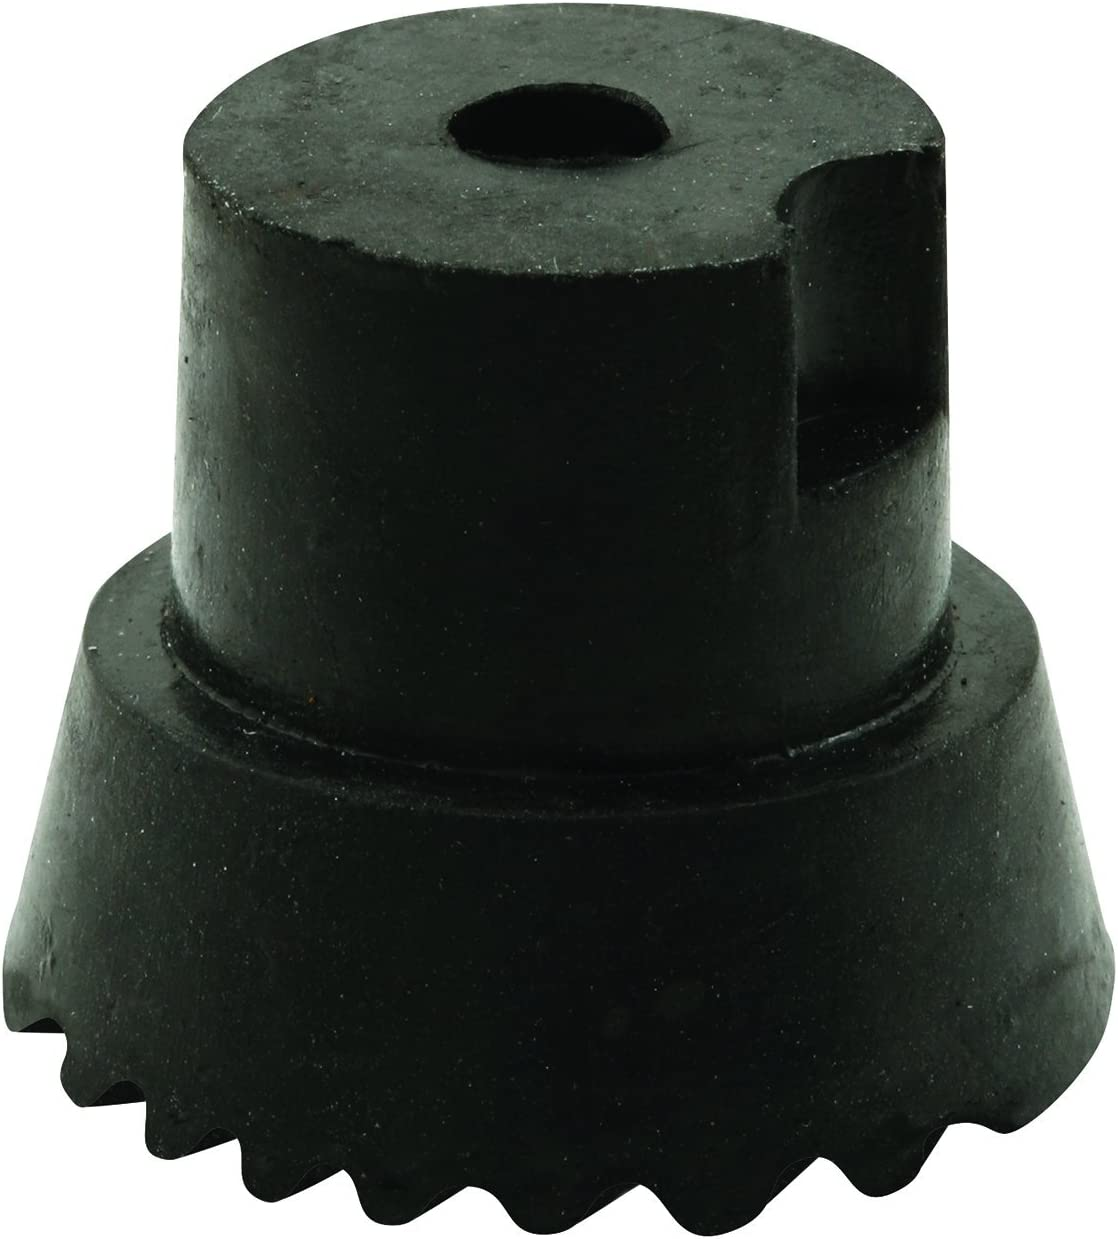 x 3//4 in Pack of 10, Prime-Line Products MP4557 Door Holder Tip 1 in Black Includes Fastener Rubber